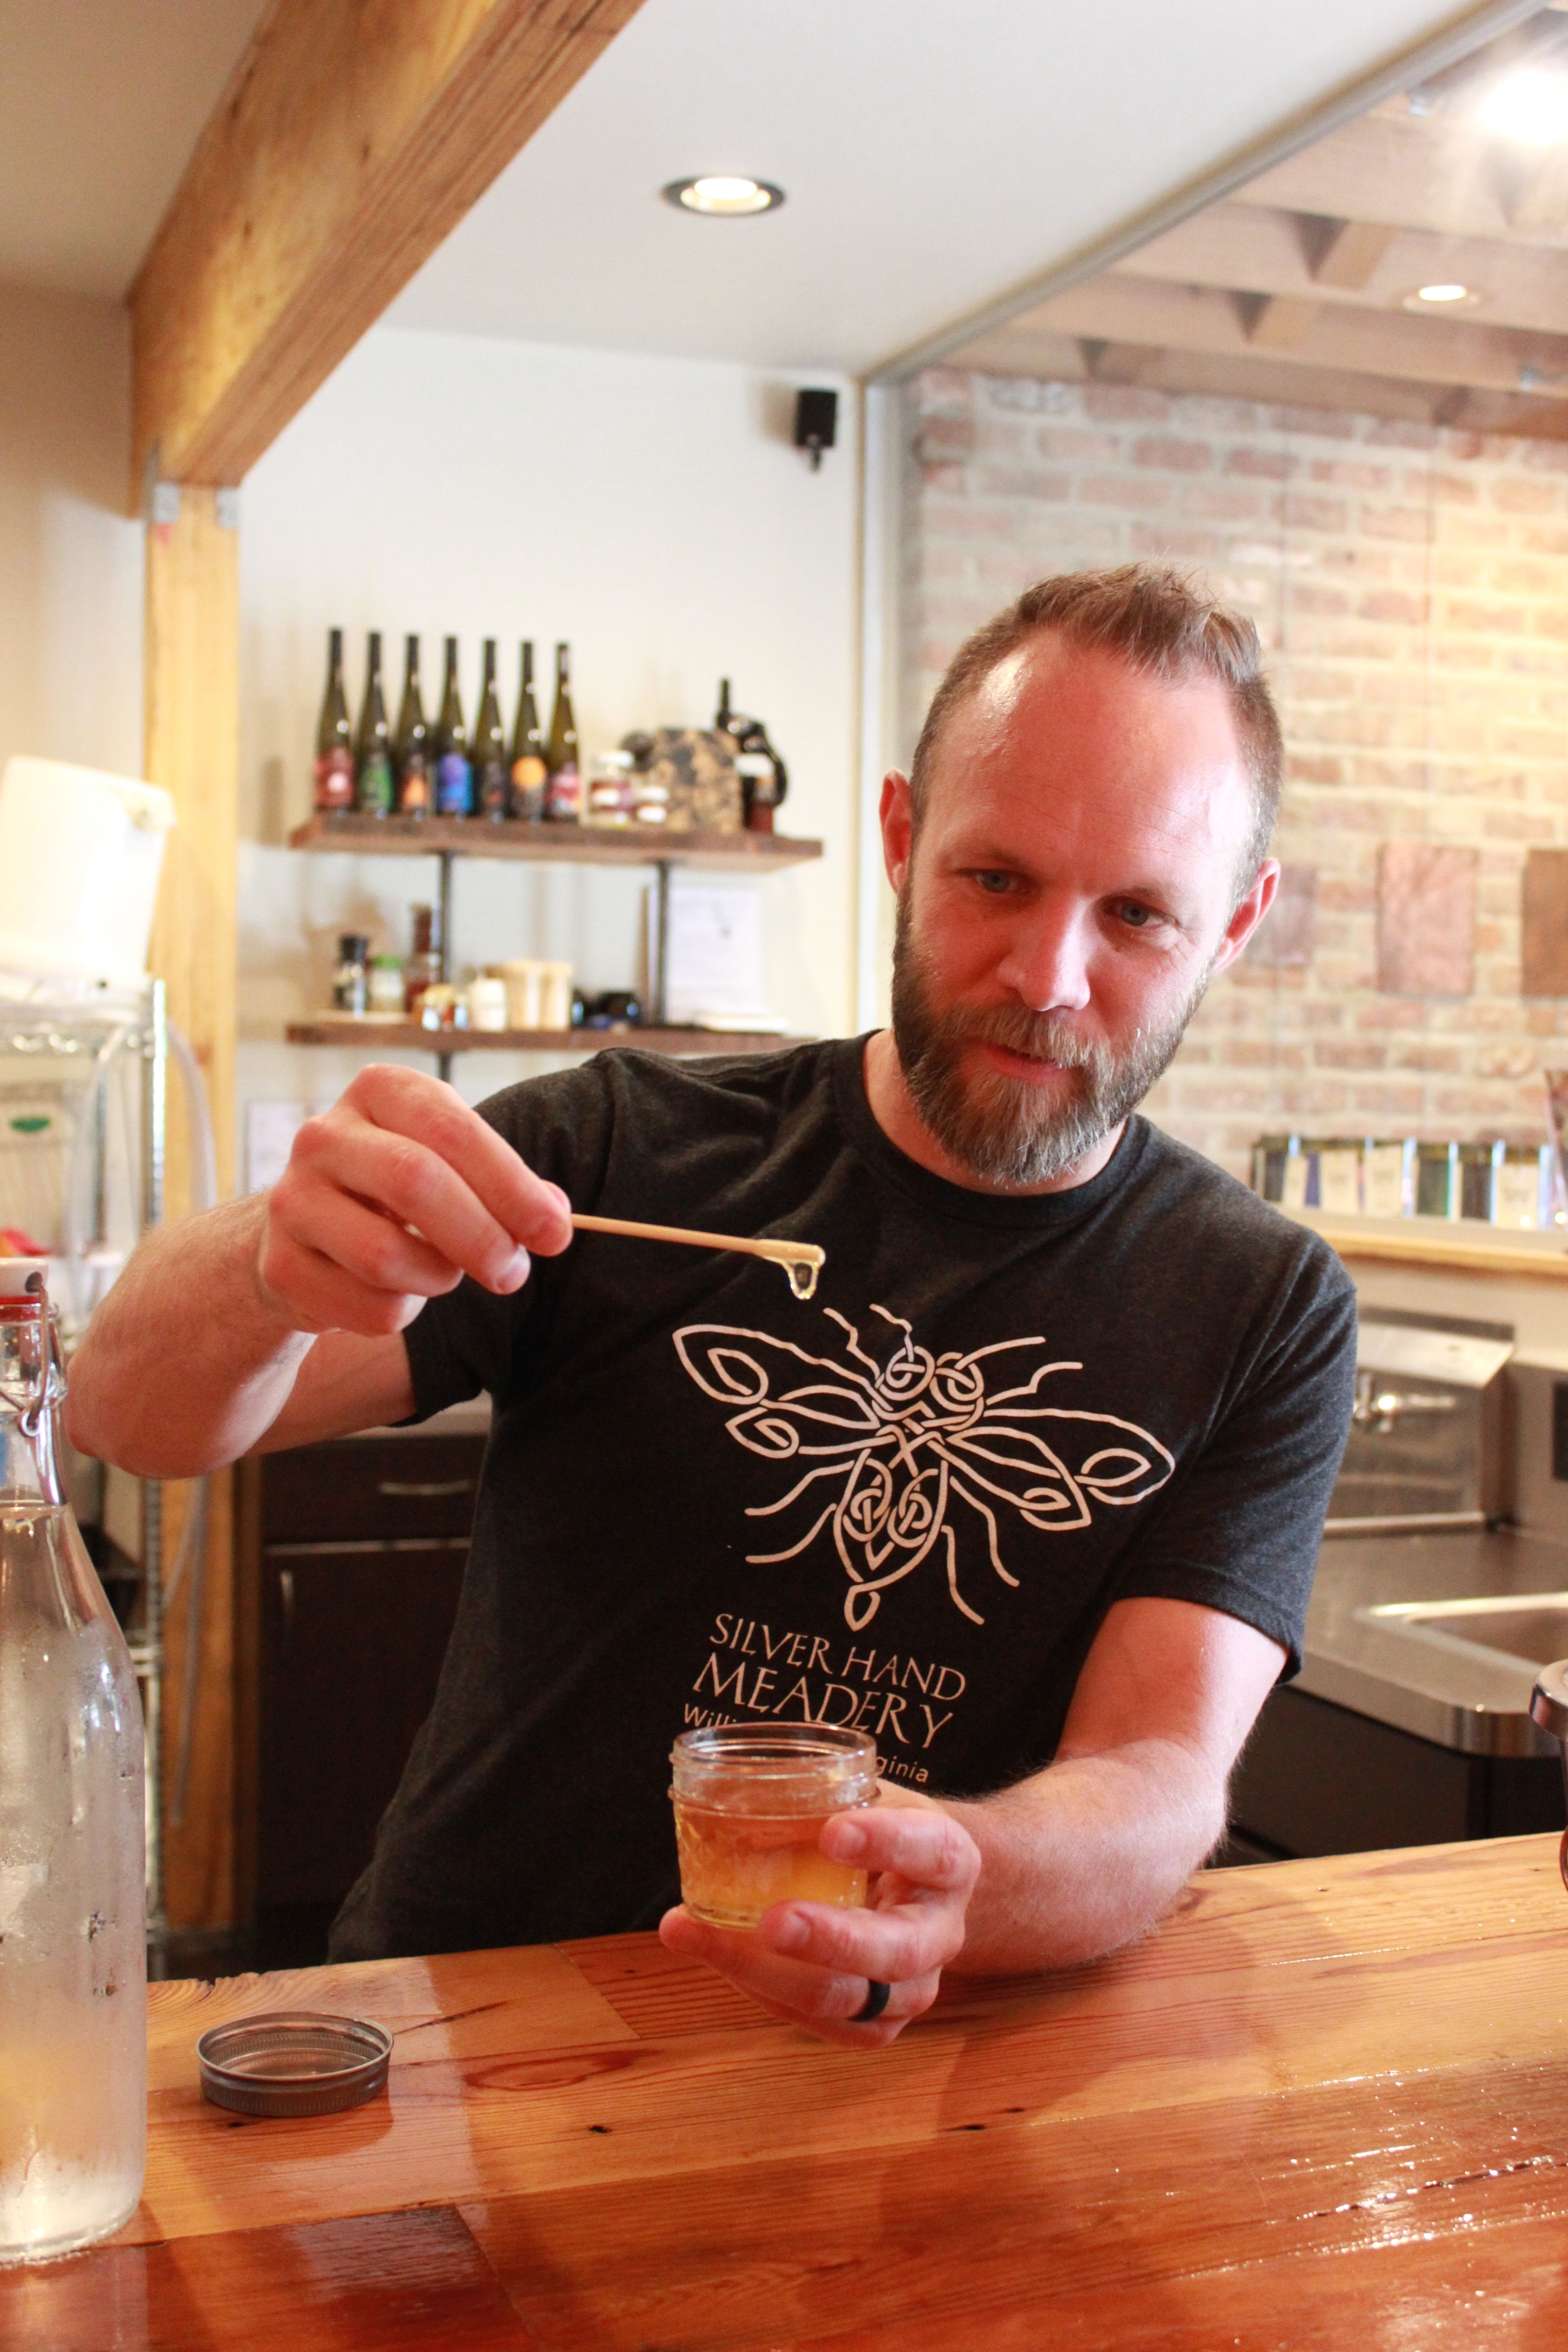 Glenn Lavender hands out sampes of honey at the Silver Hand Meadery in Virginia